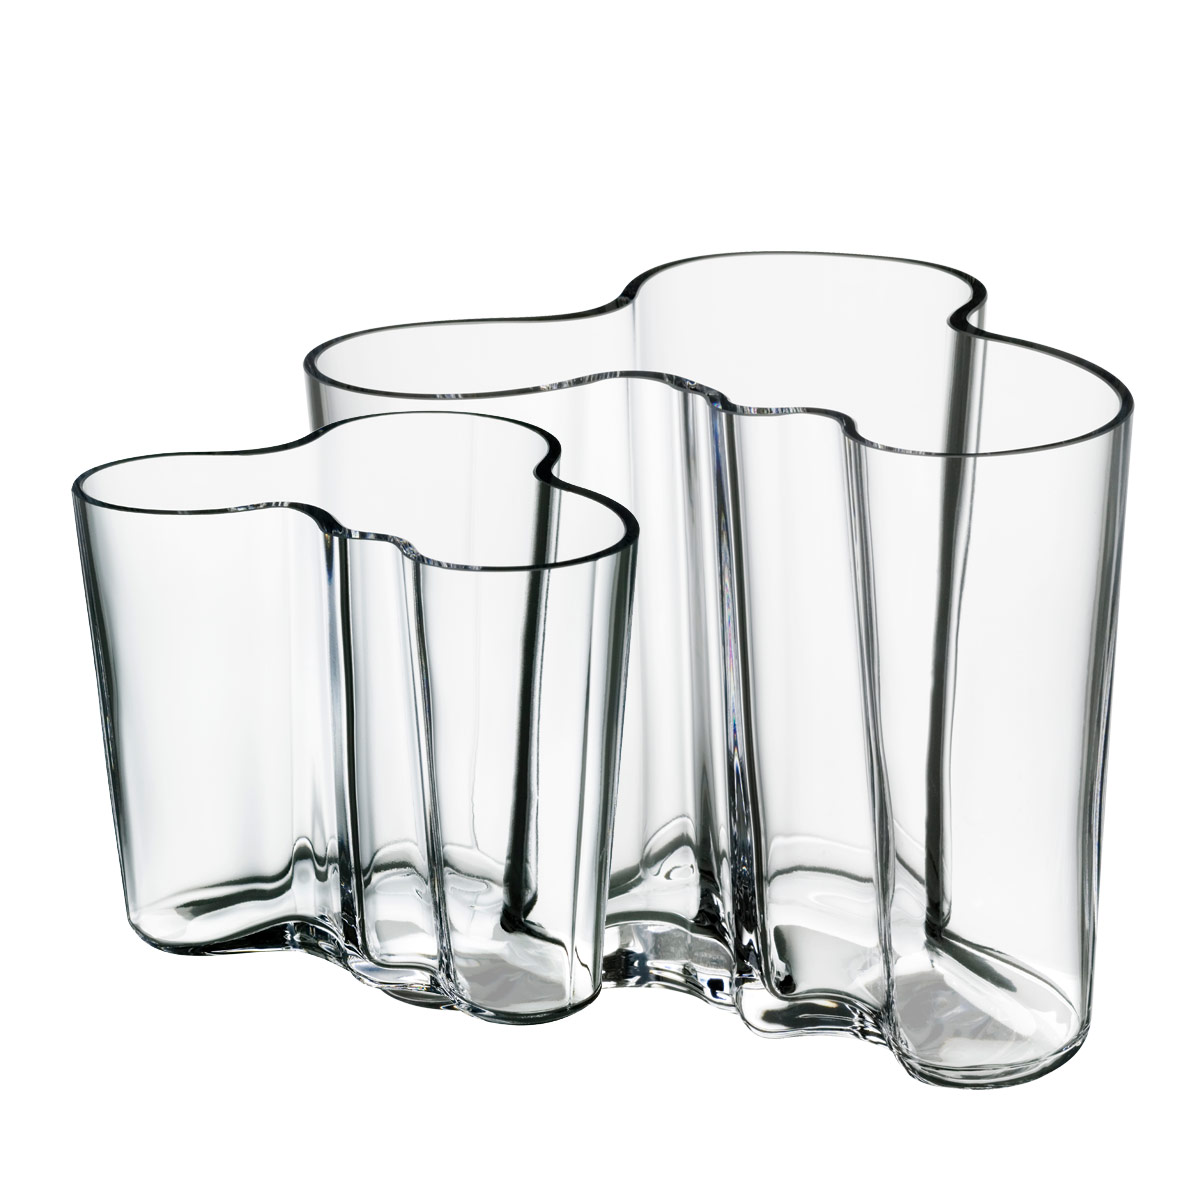 iittala aalto clear vase gift set 3 3 4 4 3 4 iittala aalto clear vases. Black Bedroom Furniture Sets. Home Design Ideas